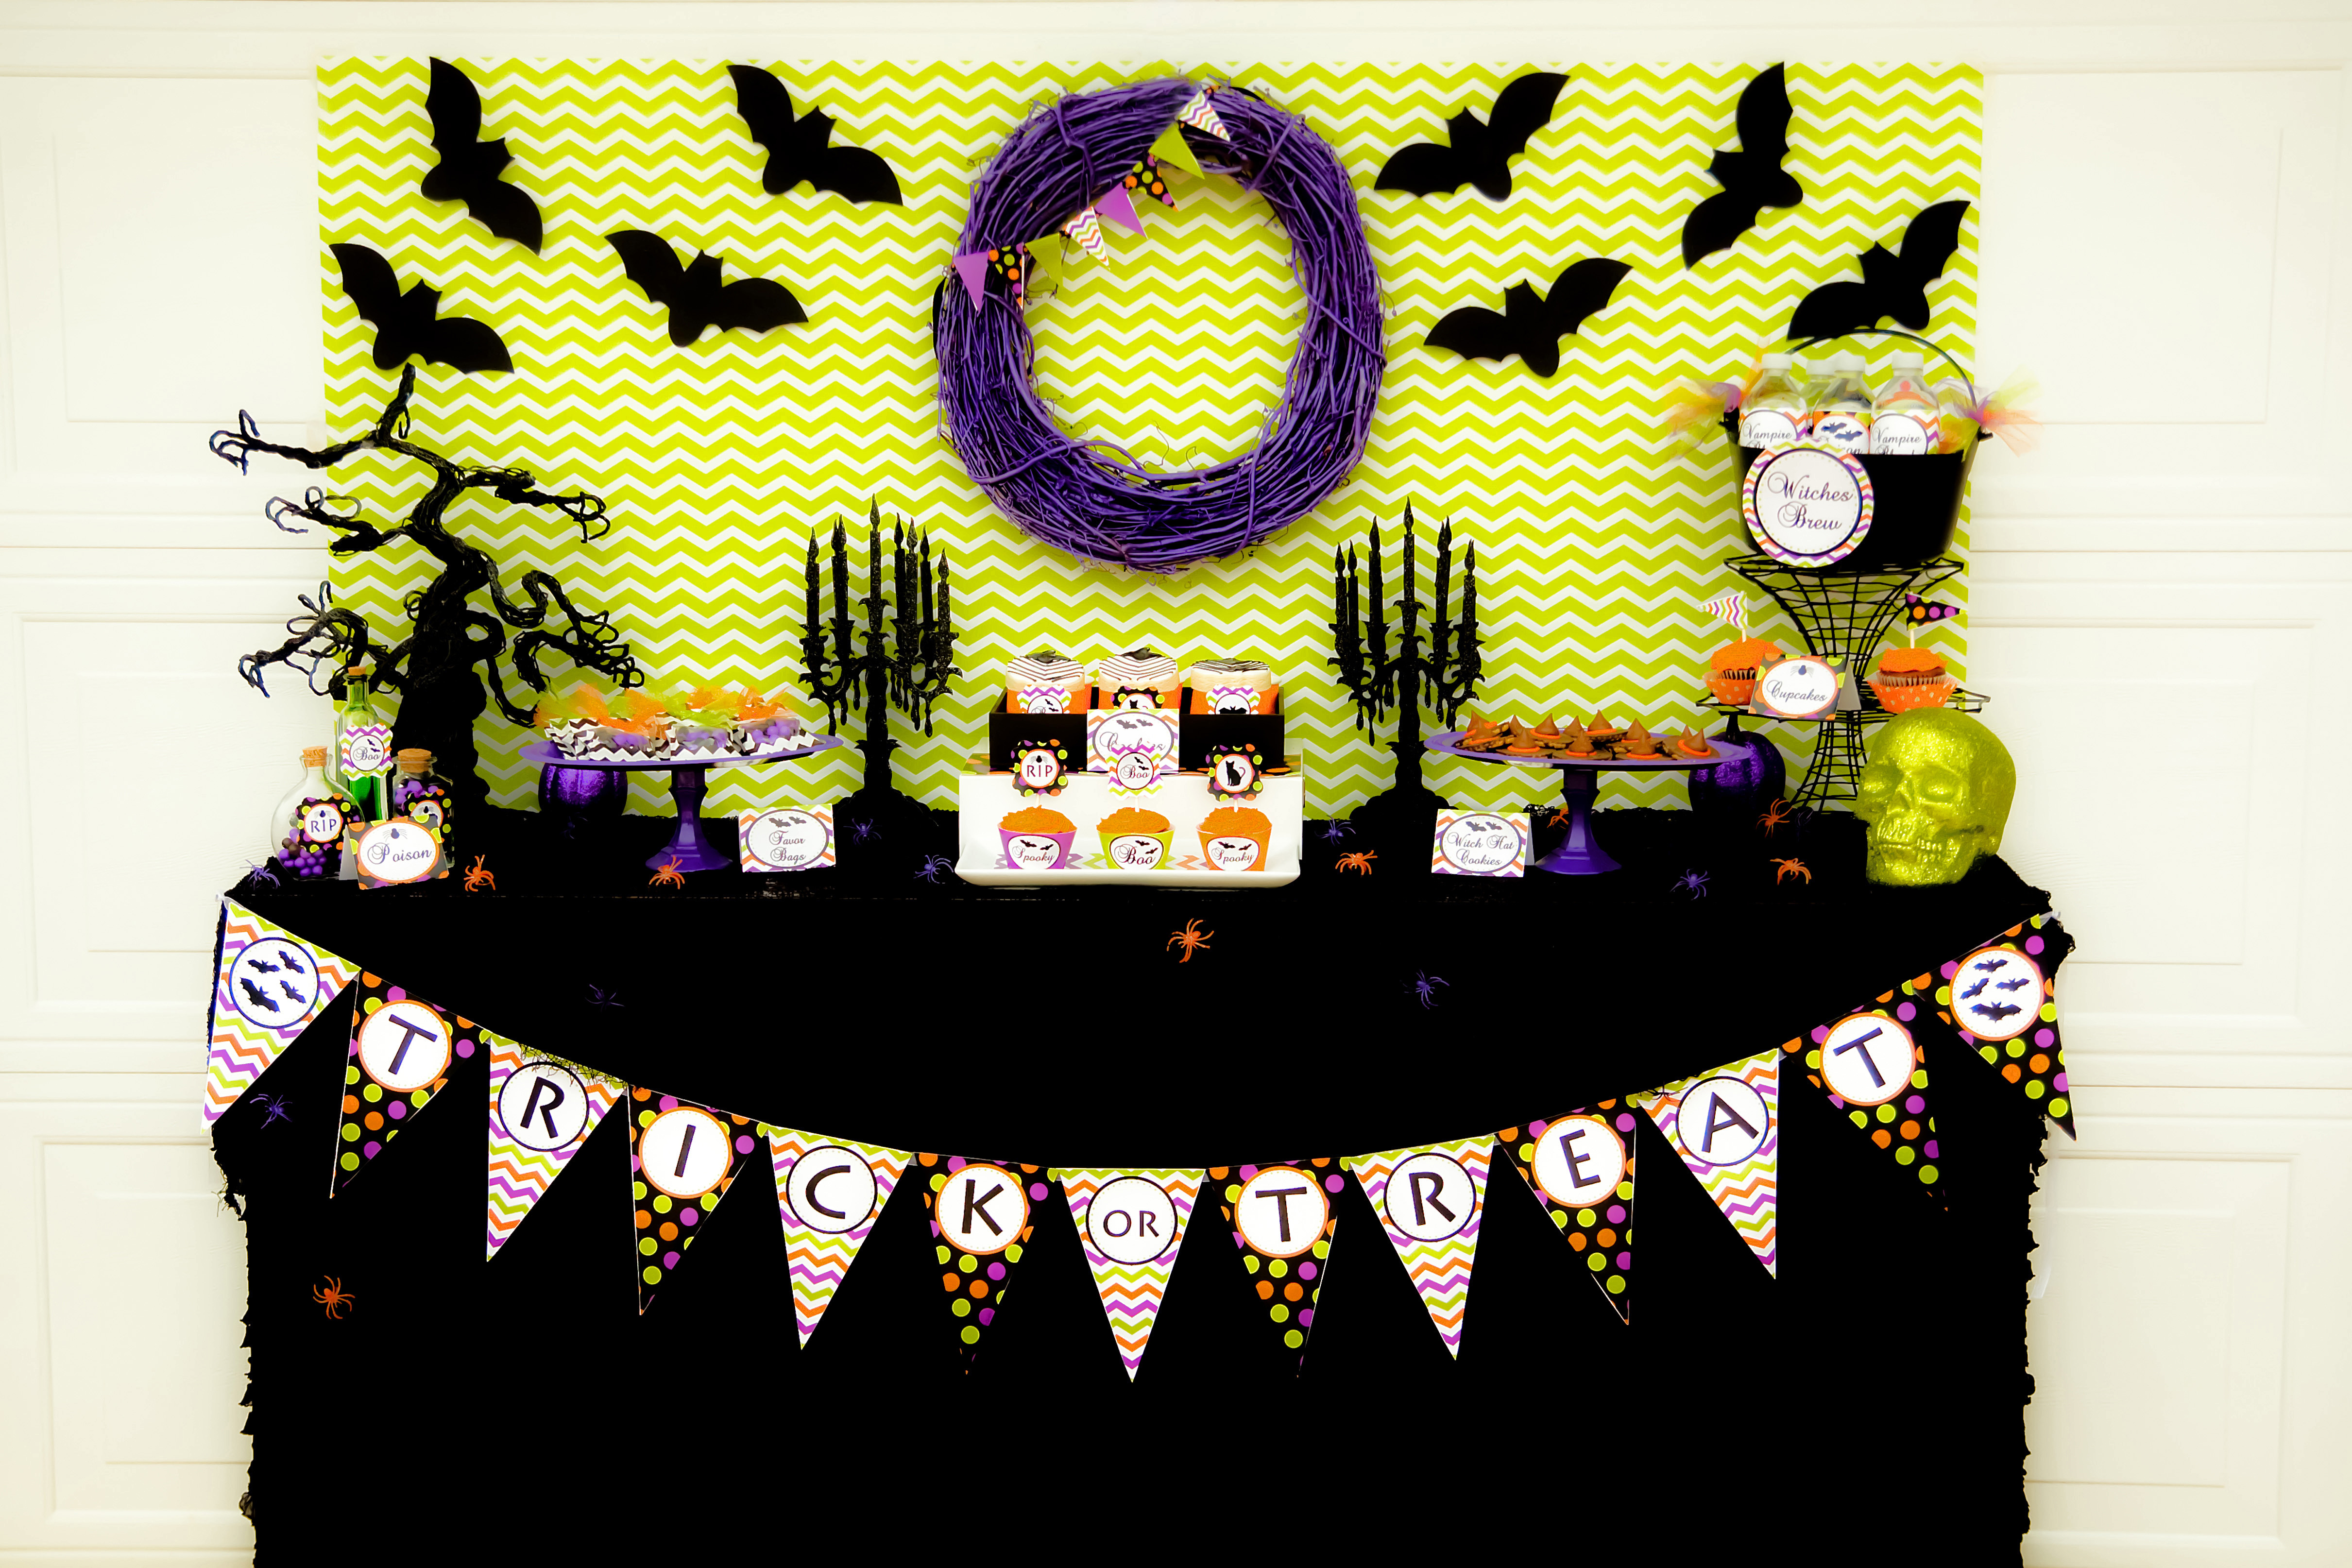 Spooktacular Halloween Party! - Free Printable Halloween Party Decorations